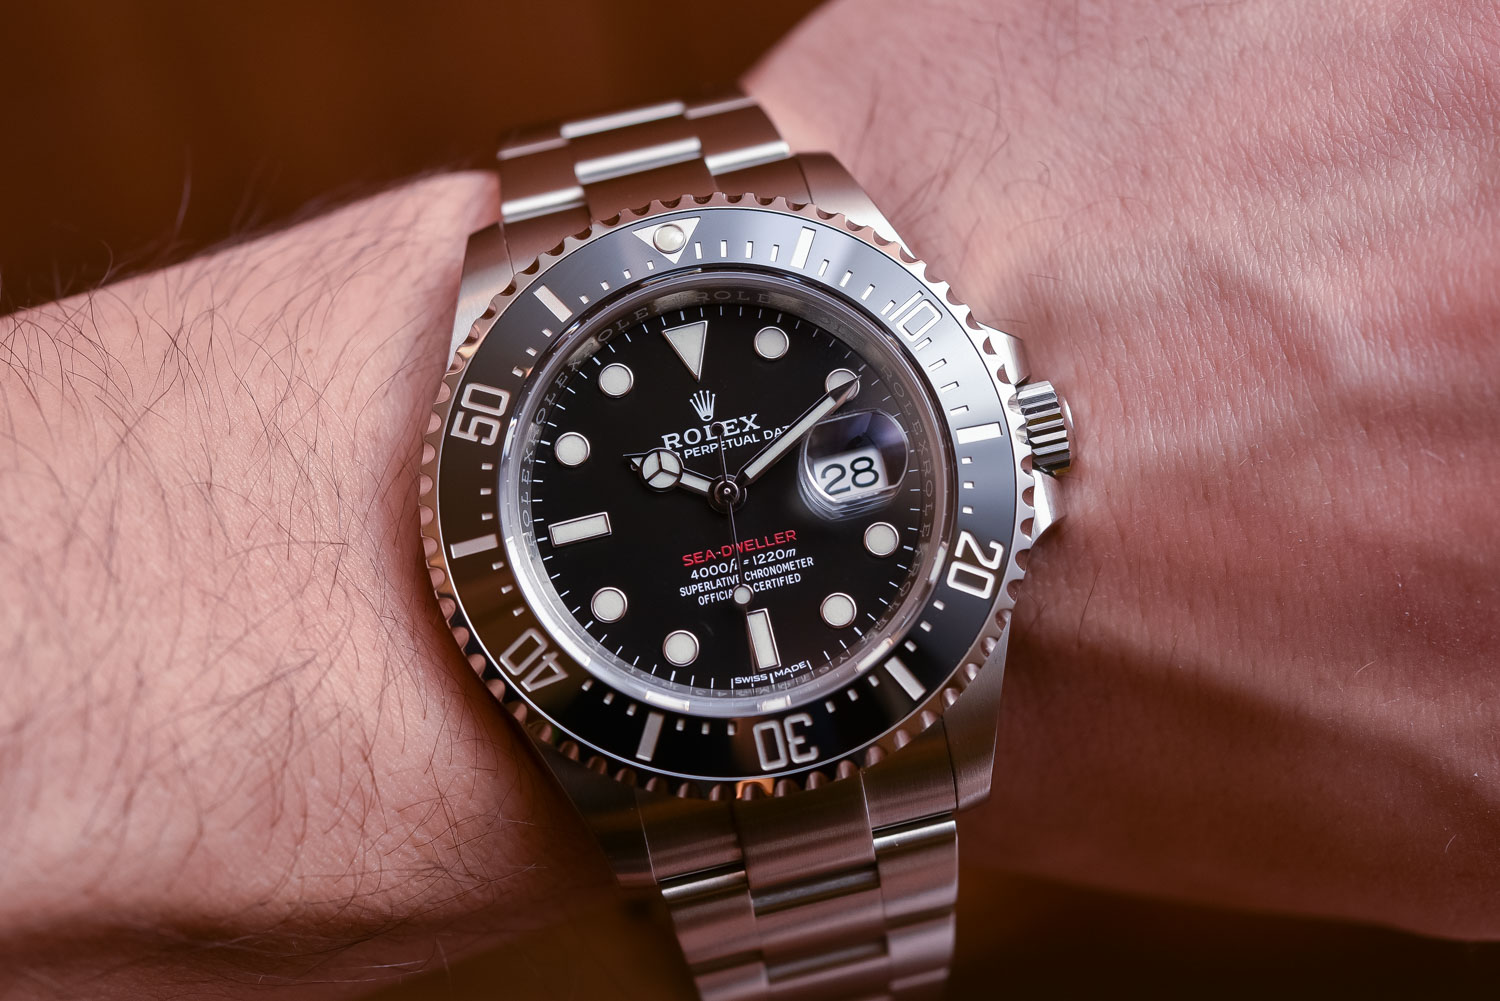 Rolex Sea-Dweller Ref. 126600 43mm